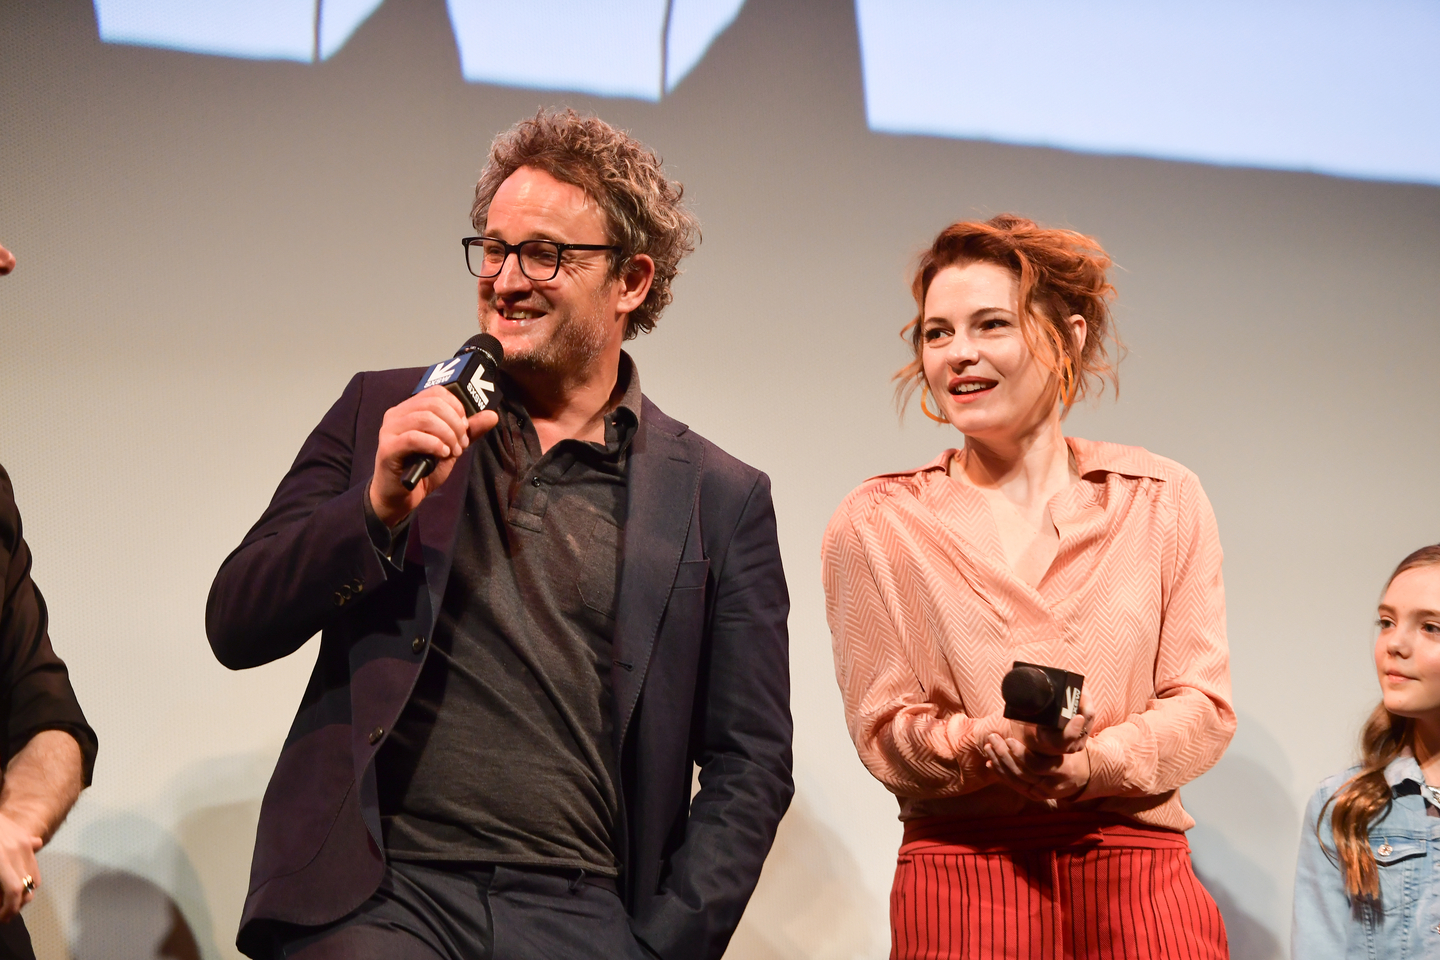 Jason Clarke and Amy Seimetz attend the Pet Sematary premiere at the Paramount Theatre.